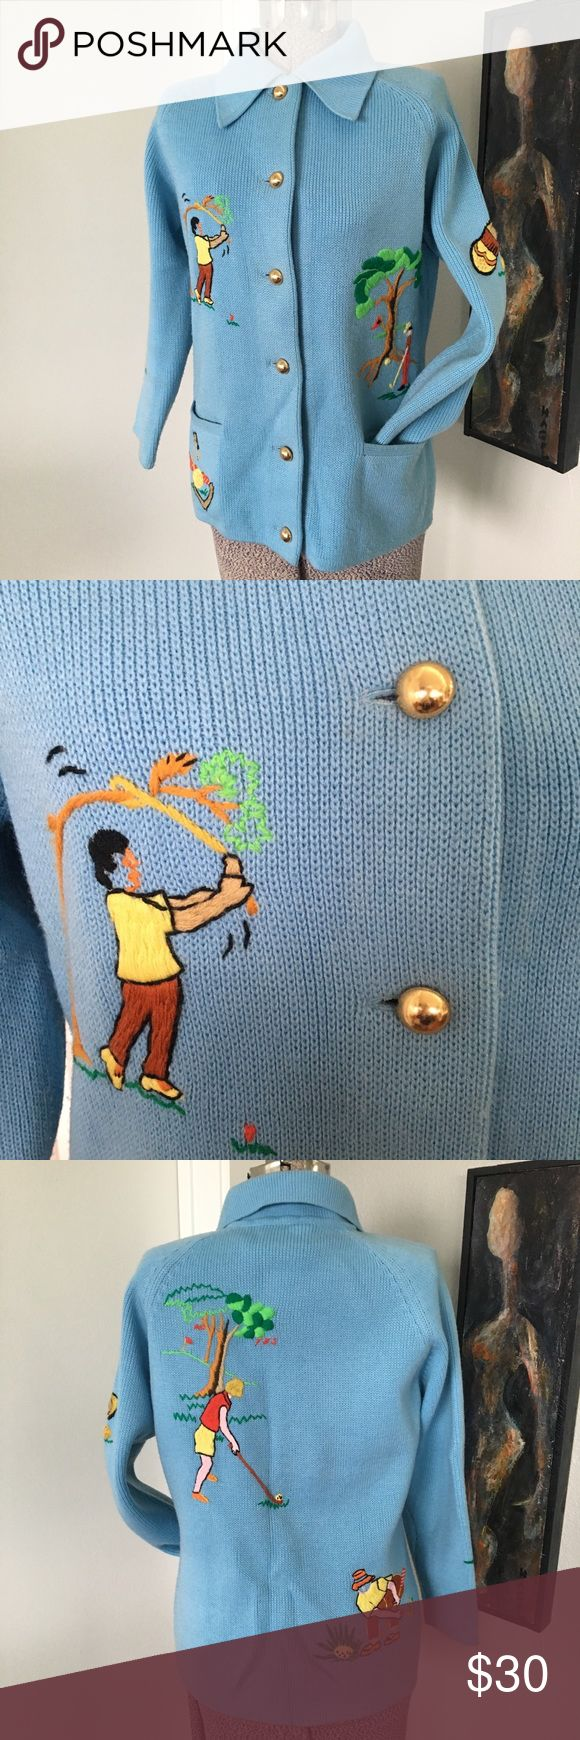 VINTAGE Gold Hand Embroidered Sweater Cardigan So cute and funny.  Thick poly weave. Warm with perfect gold plastic buttons.   I really want to think this wearer sewed these ladies in homage to her golf group.  No staining.   In great vintage shape! Vintage Sweaters Cardigans